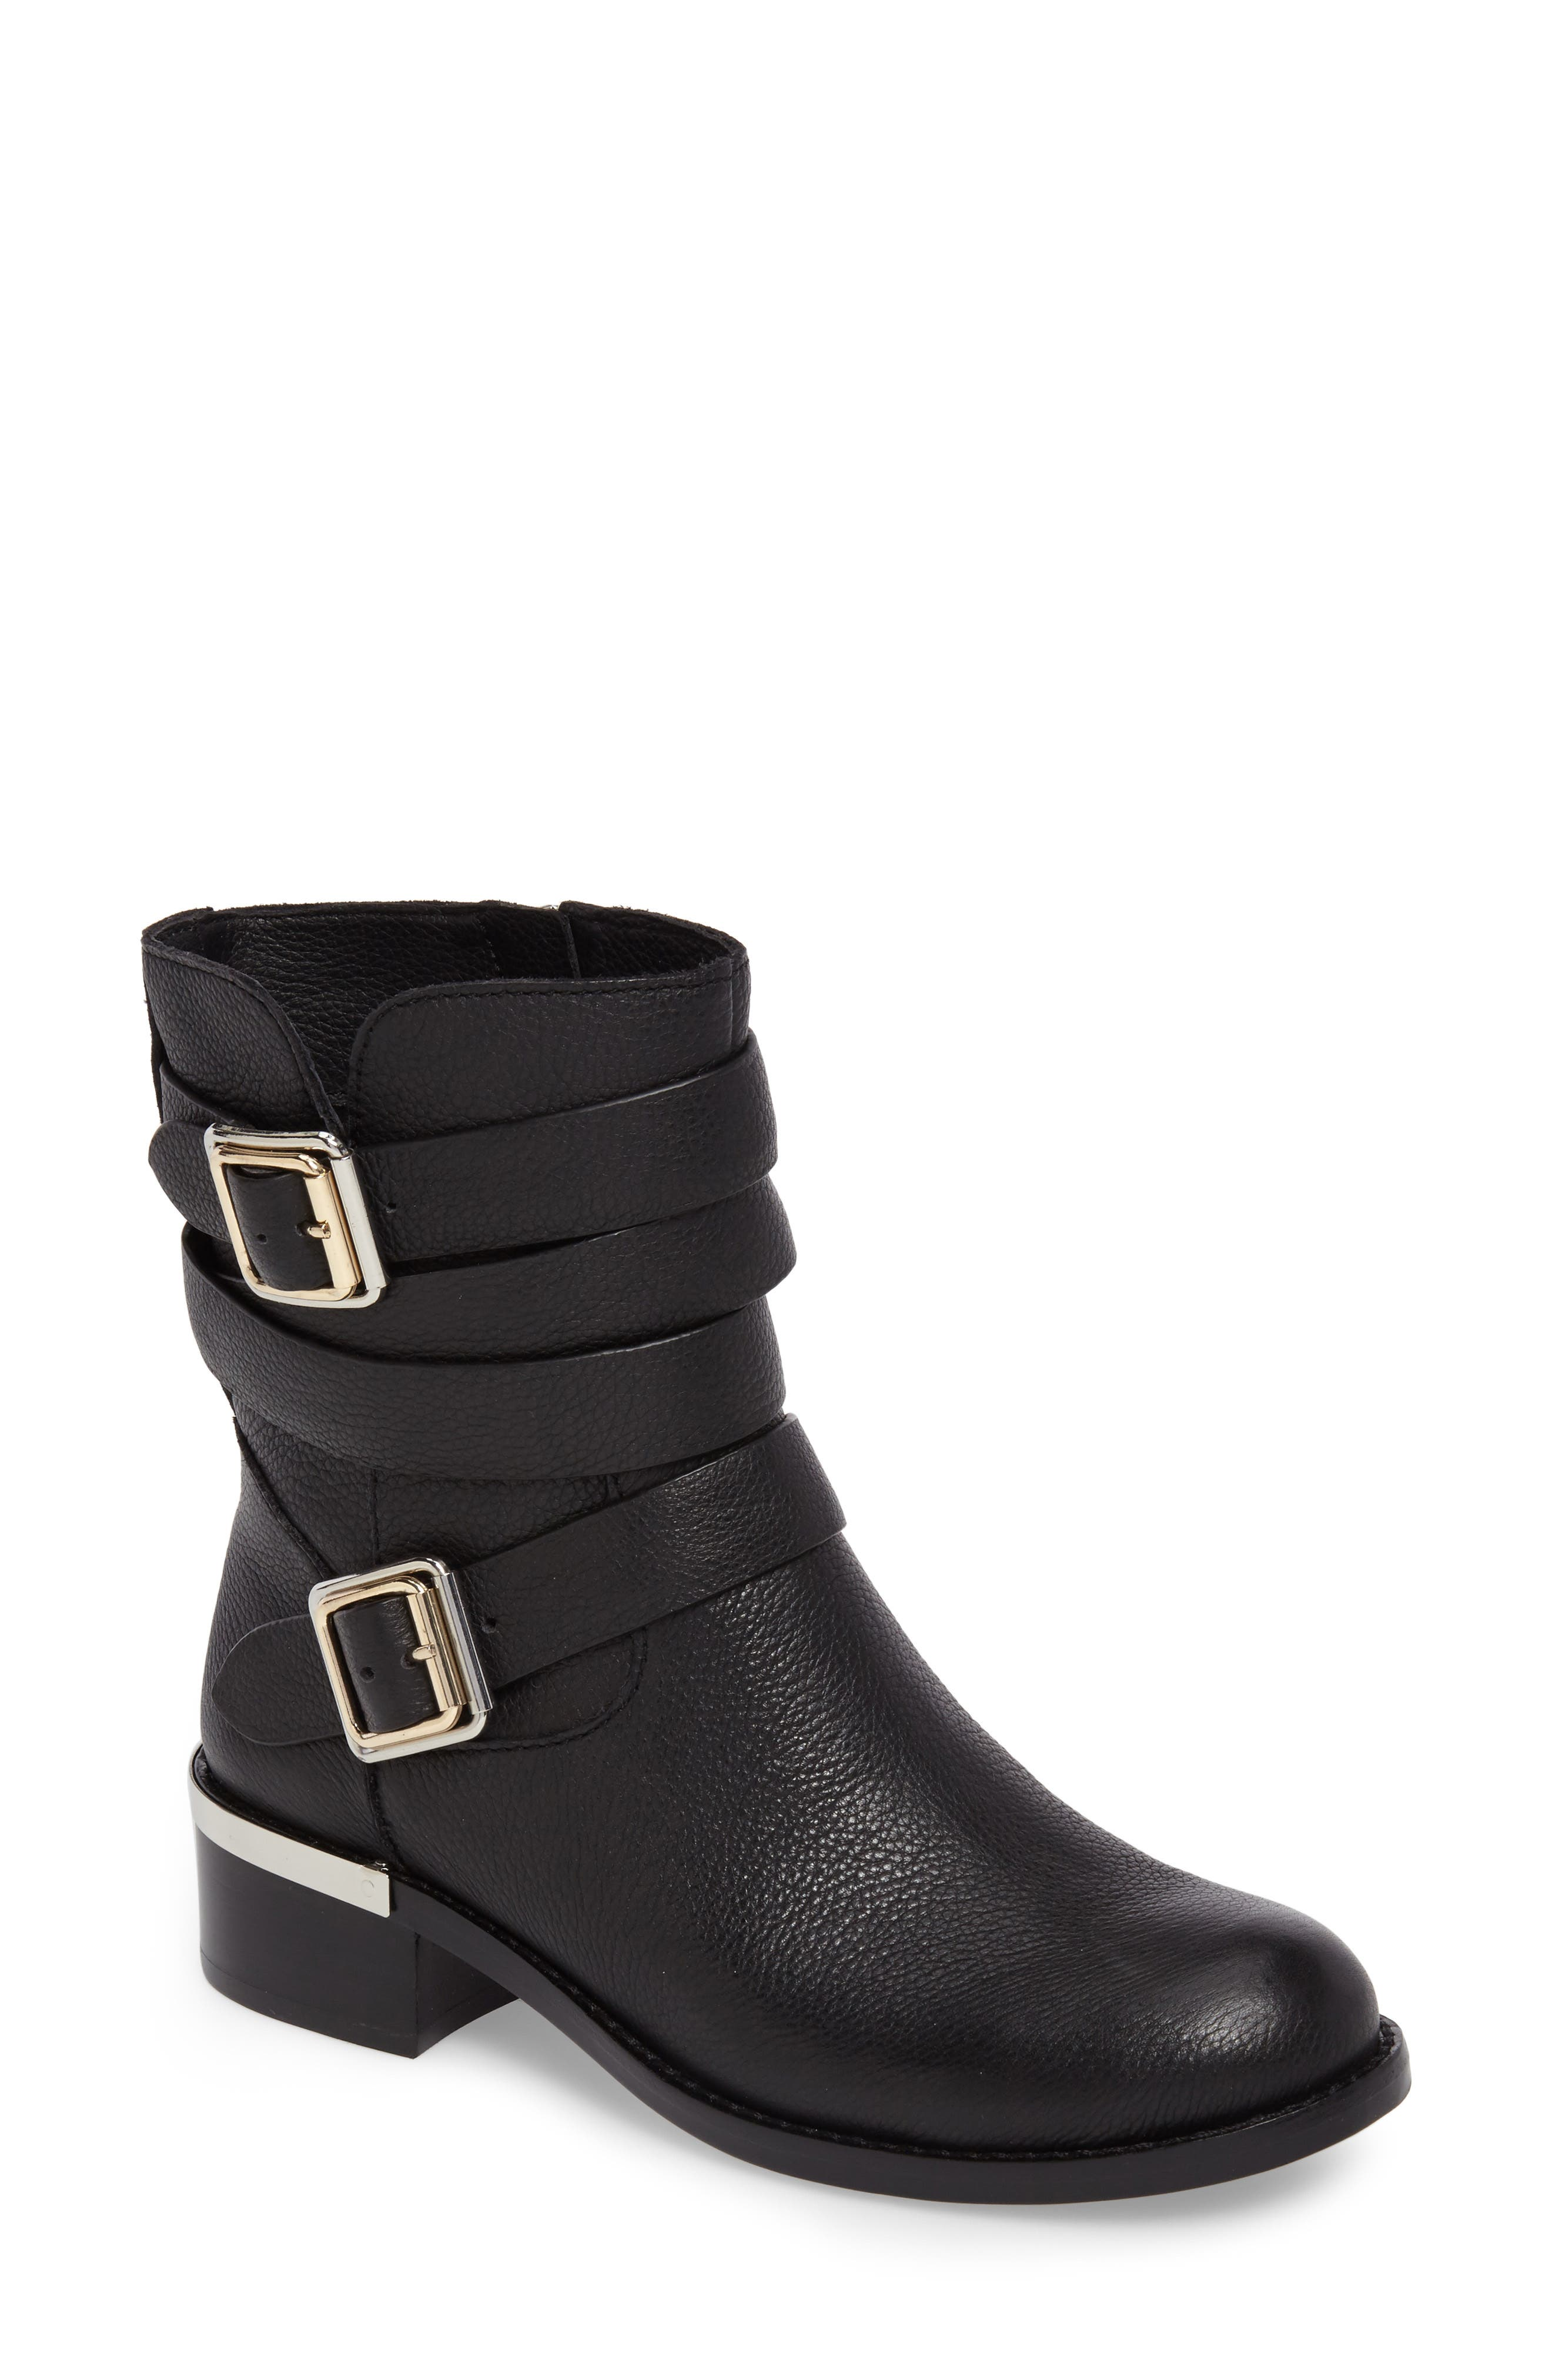 Webey Boot,                             Main thumbnail 1, color,                             Black Leather